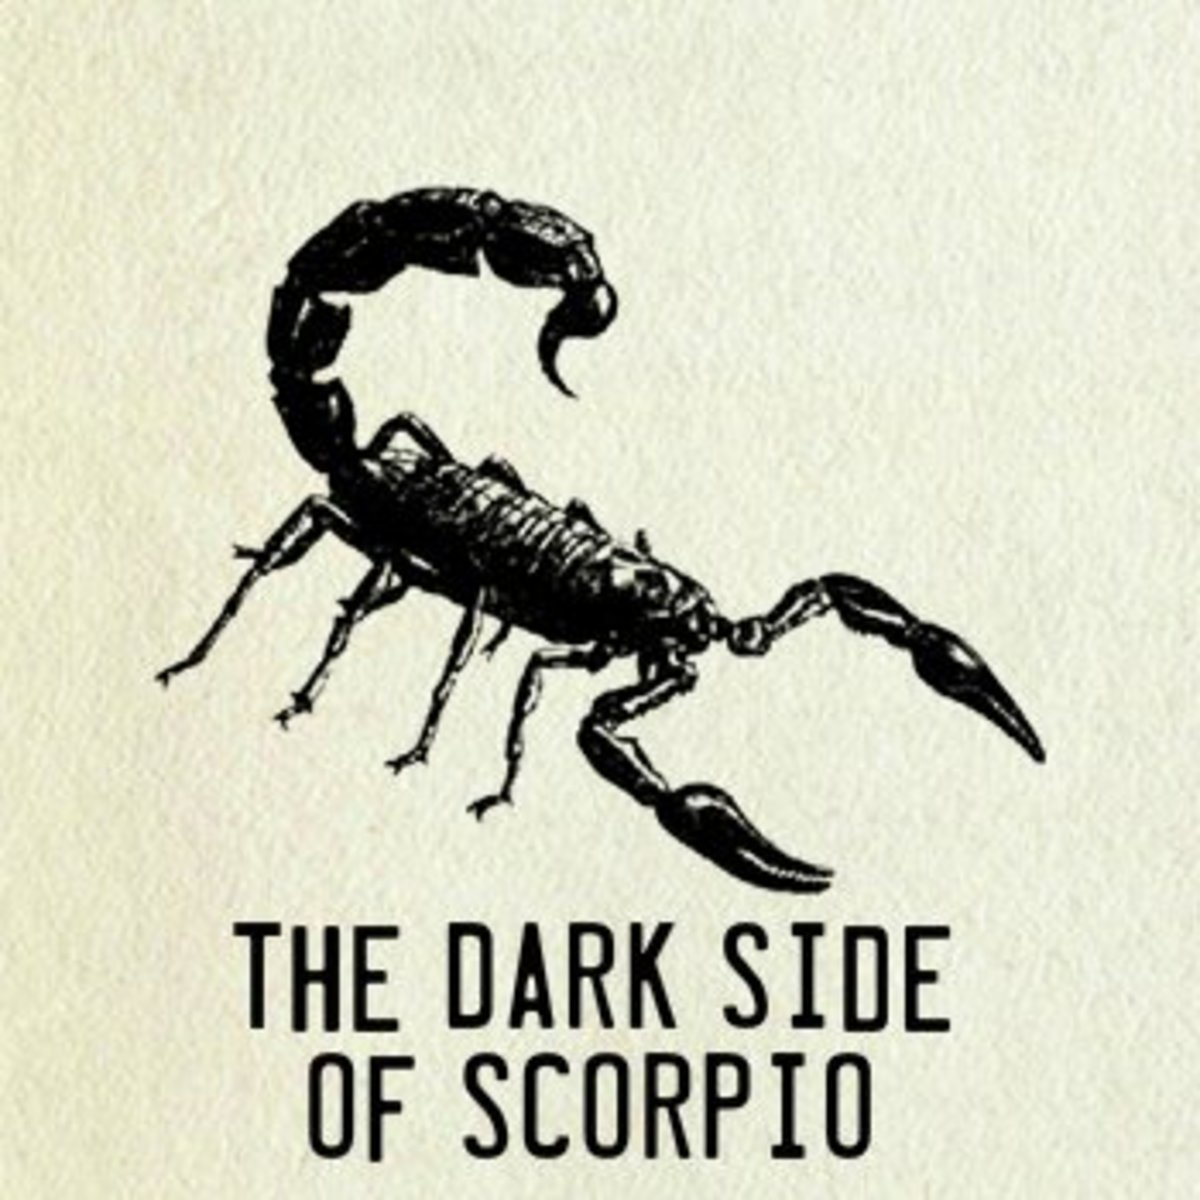 Dark Side of Scorpio: Vengeful, Fixated, Self-Destructive, Insecure